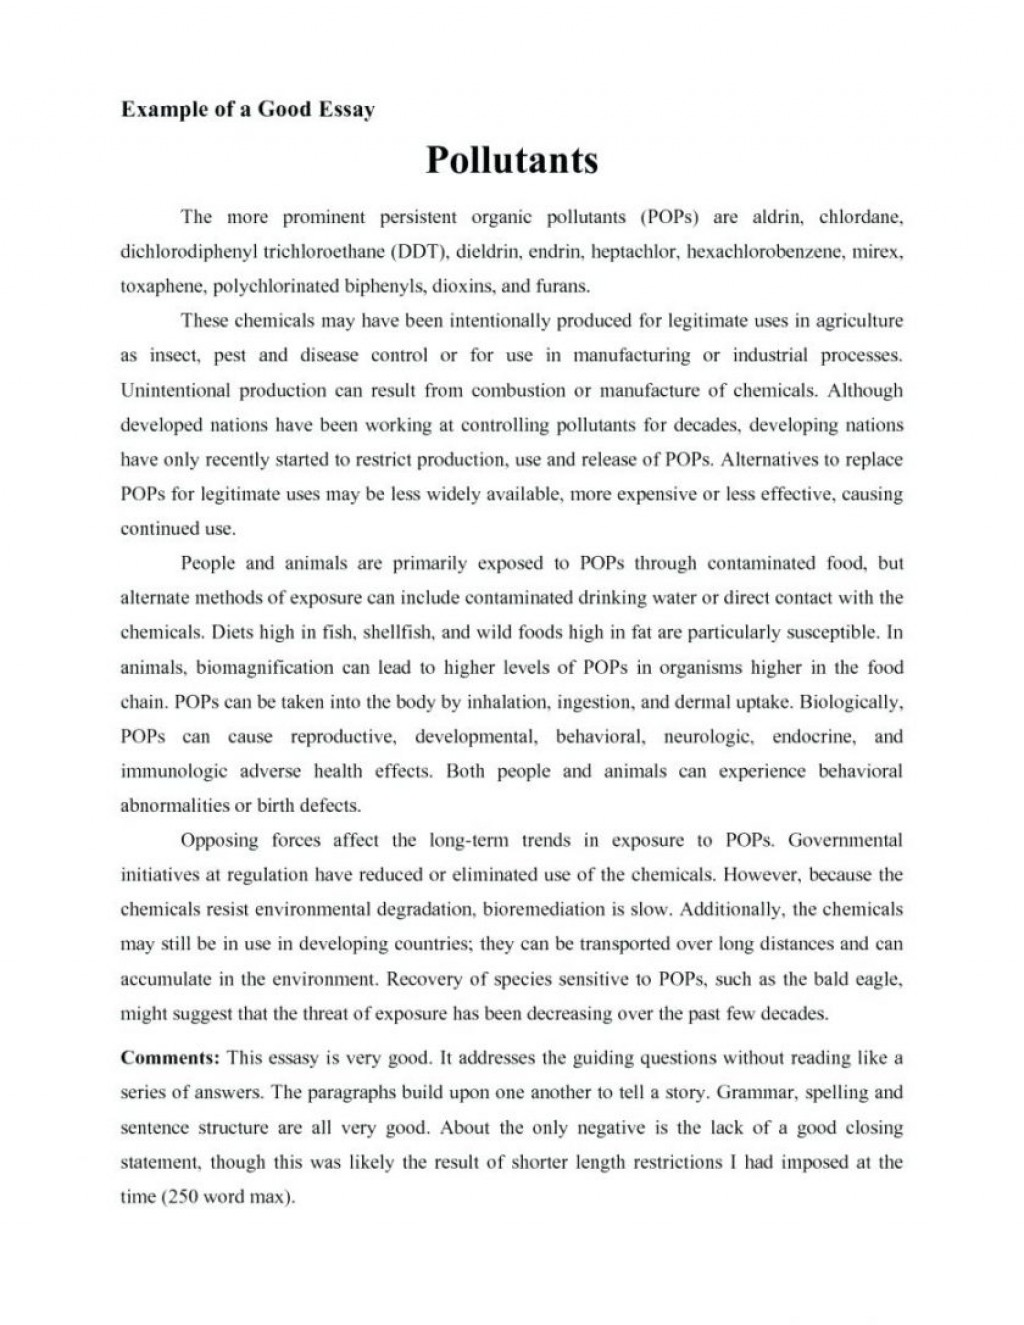 010 Research Paper Examples Of Good Essay How To Write For College Easy Topics About Questio Descriptive Informative Synthesis Persuasive Narrative Personal 840x1087 Striking Business Ethics Law And Large